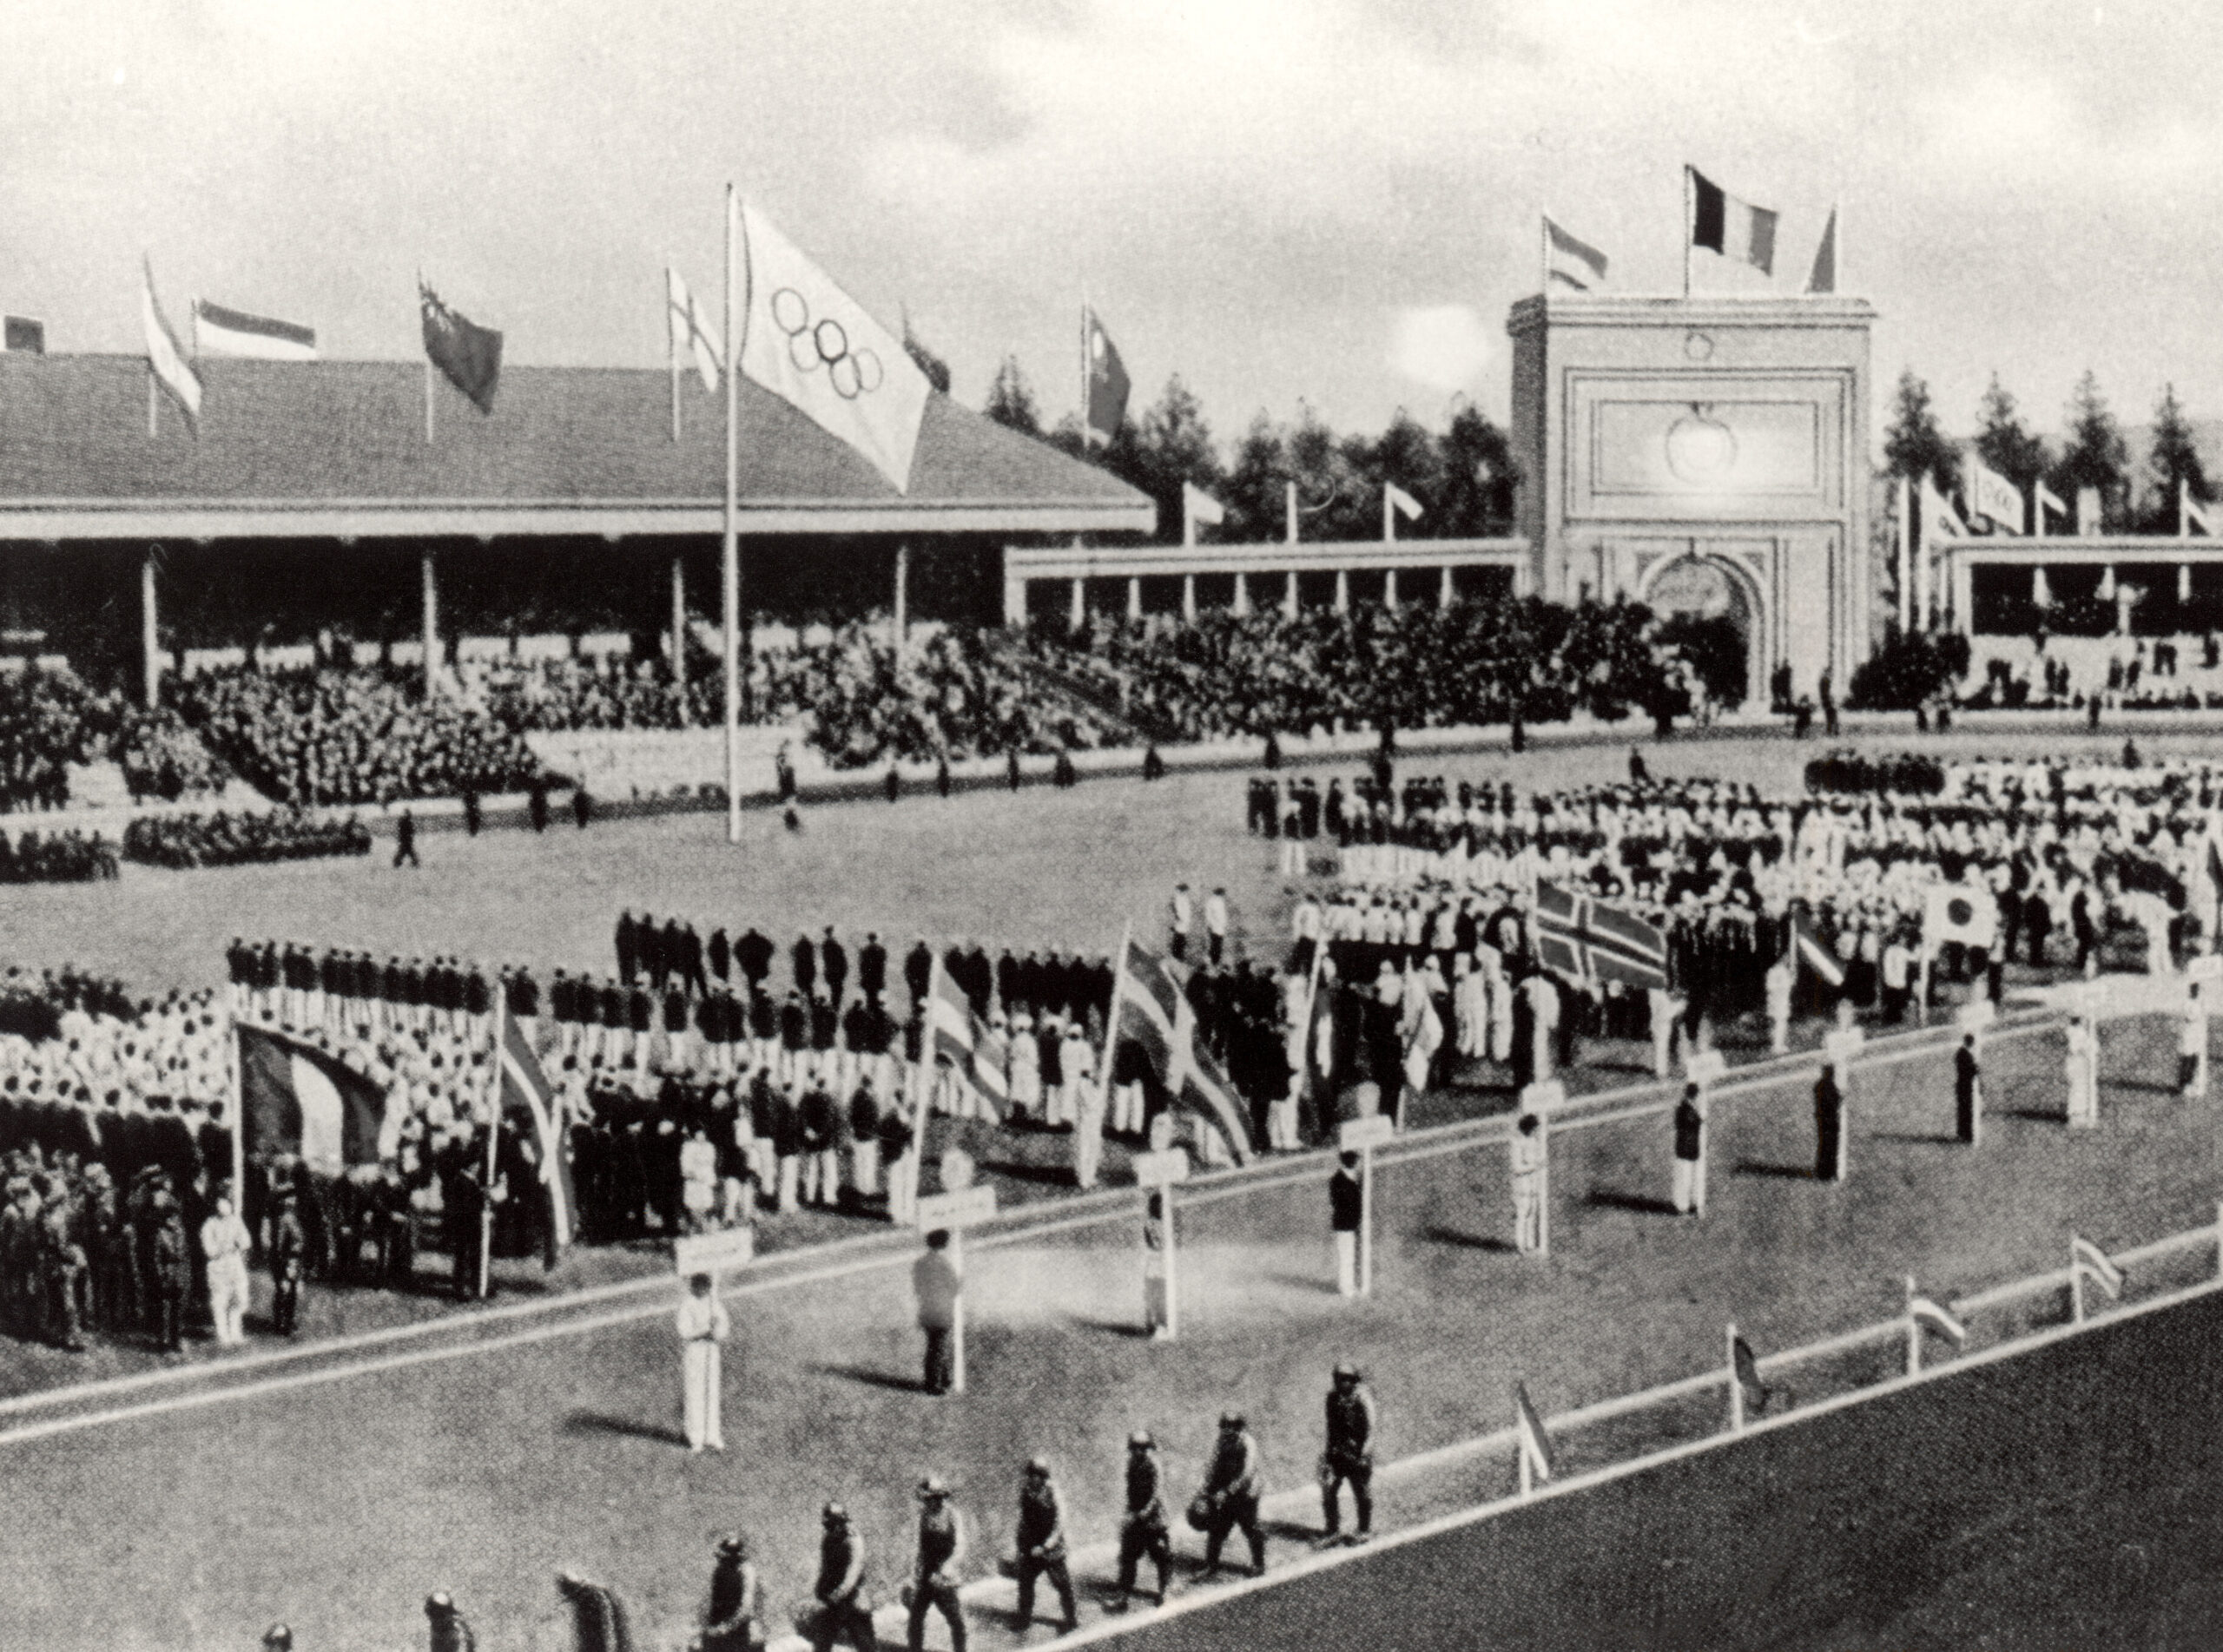 <i>Getty Images/file</i><br/>Athletes complained of poor conditions at the 1920 Antwerp Games which followed World War I and the Spanish flu pandemic.